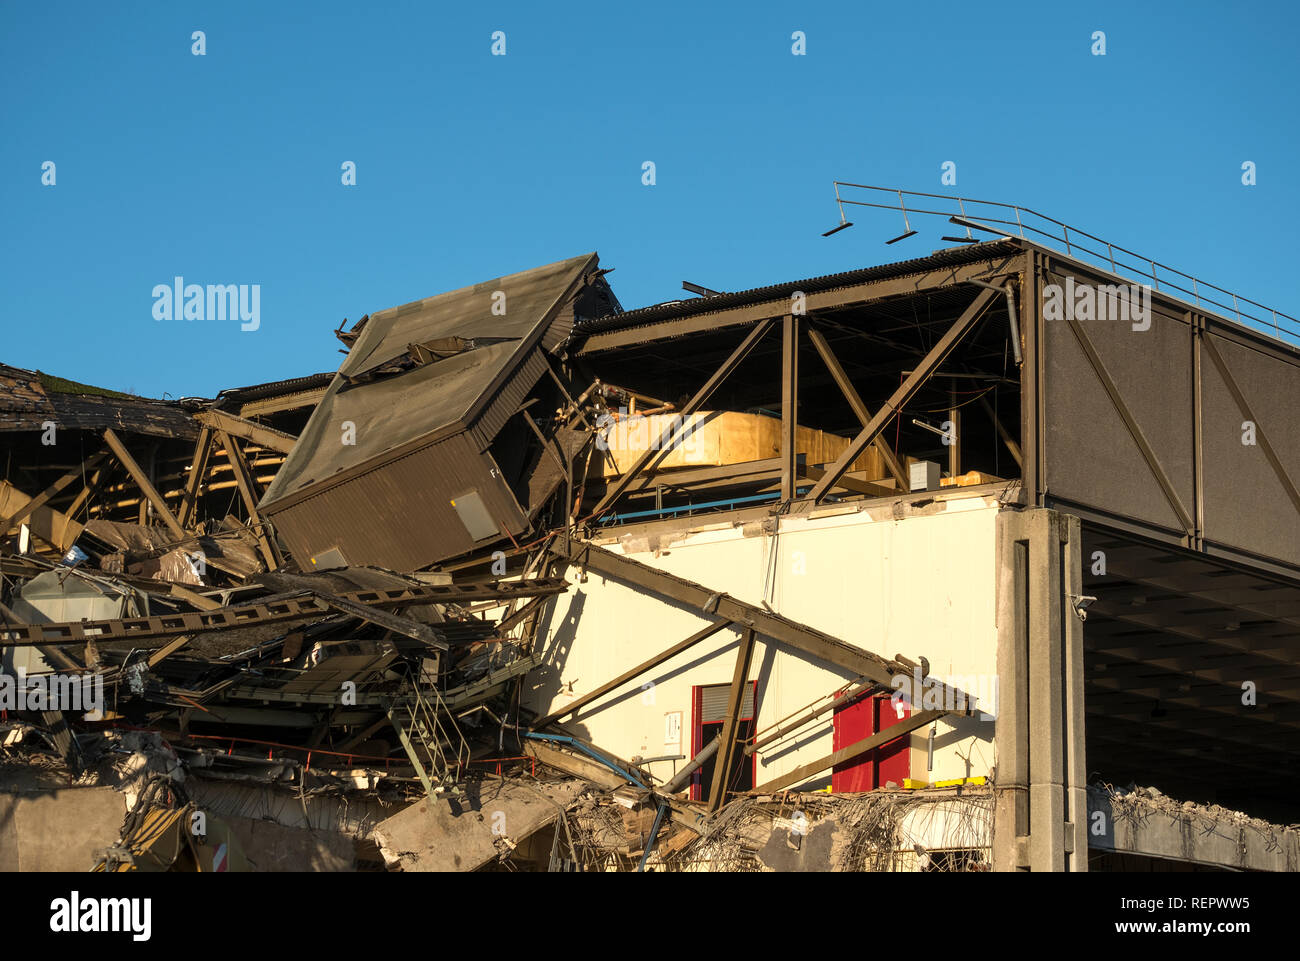 Demolition of the Imperial Tobacco factory, Nottingham, UK - Stock Image